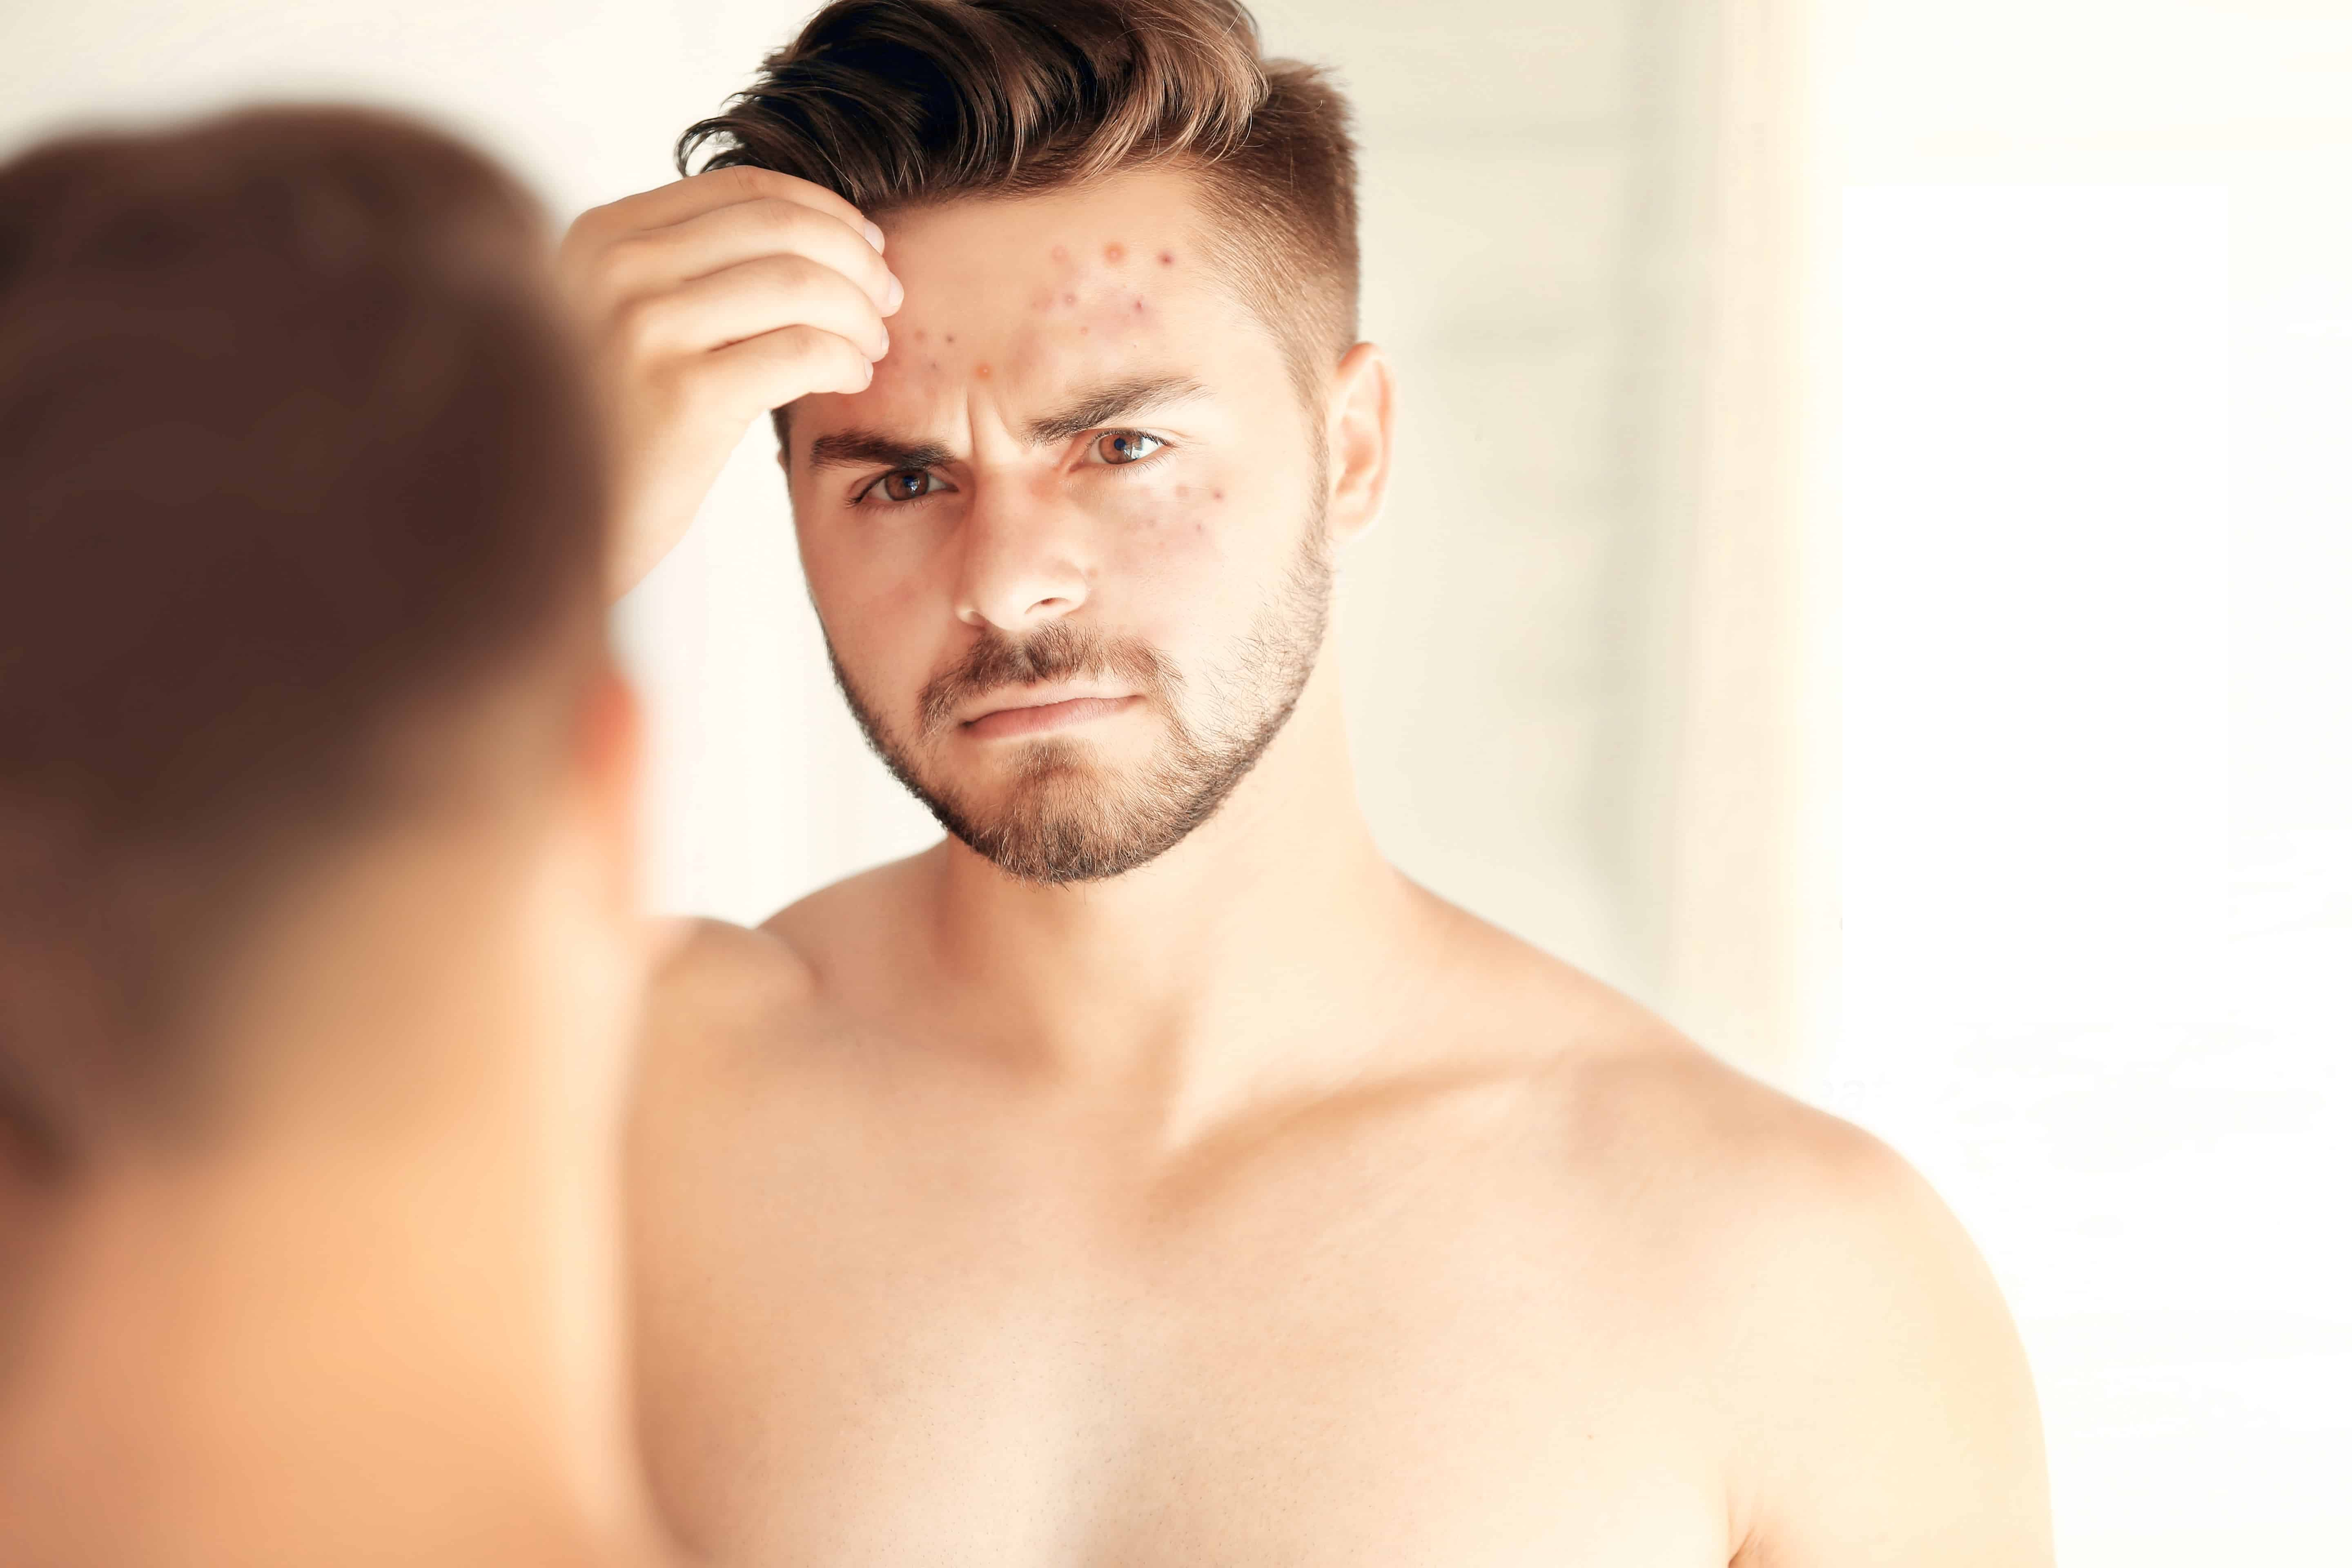 Beard And Skin Care Tips For Men With Oily Skin Beard